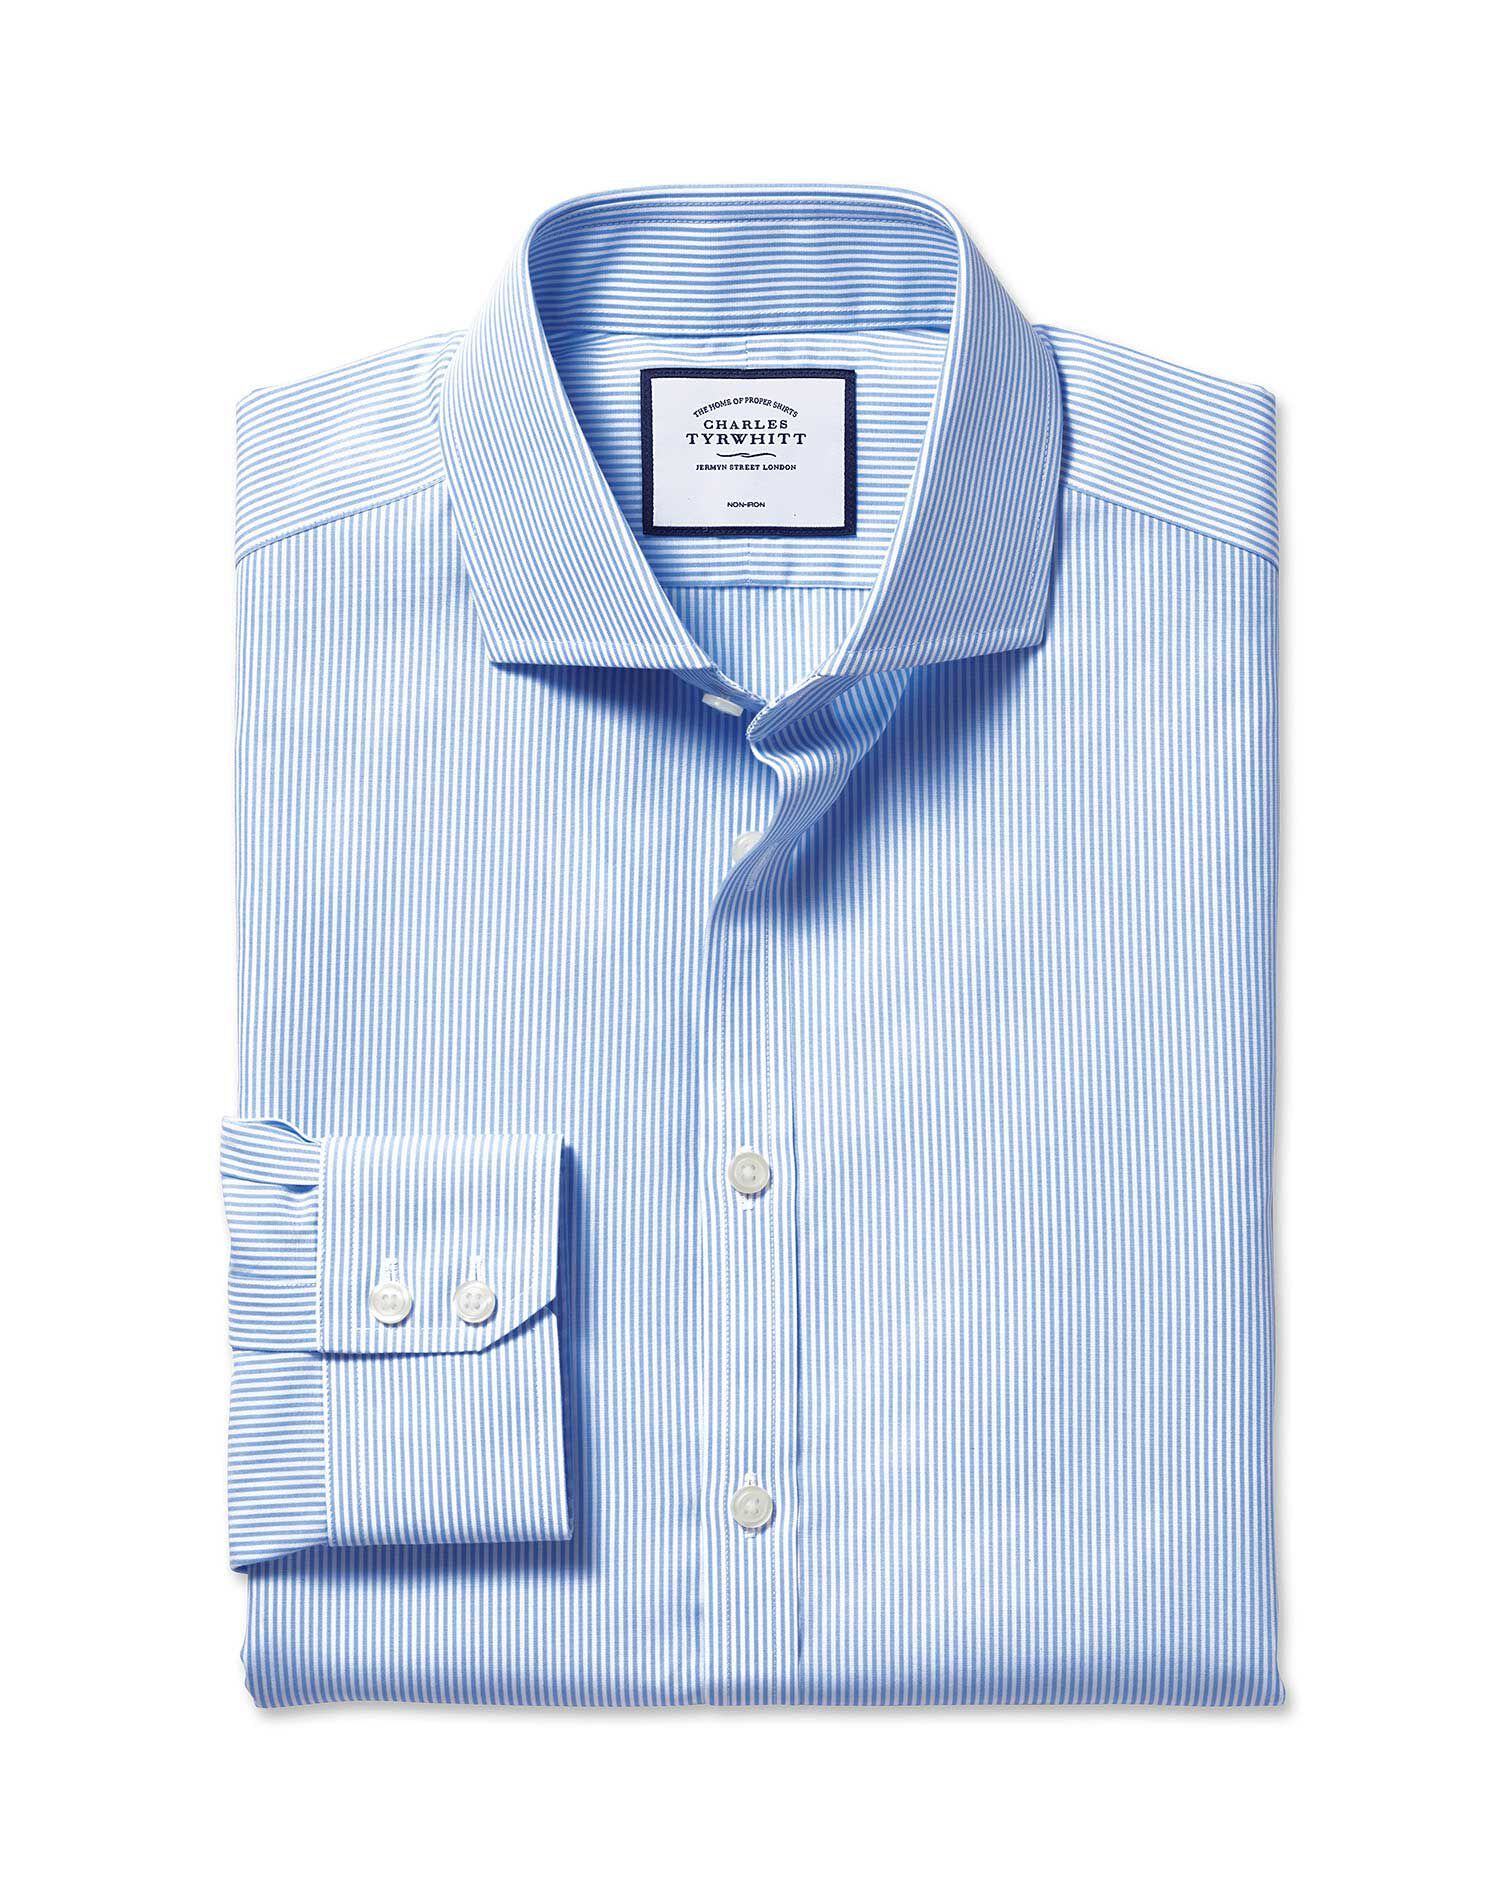 Extra Slim Fit Cutaway Non-Iron Bengal Stripe Sky Blue Cotton Formal Shirt Double Cuff Size 17.5/34